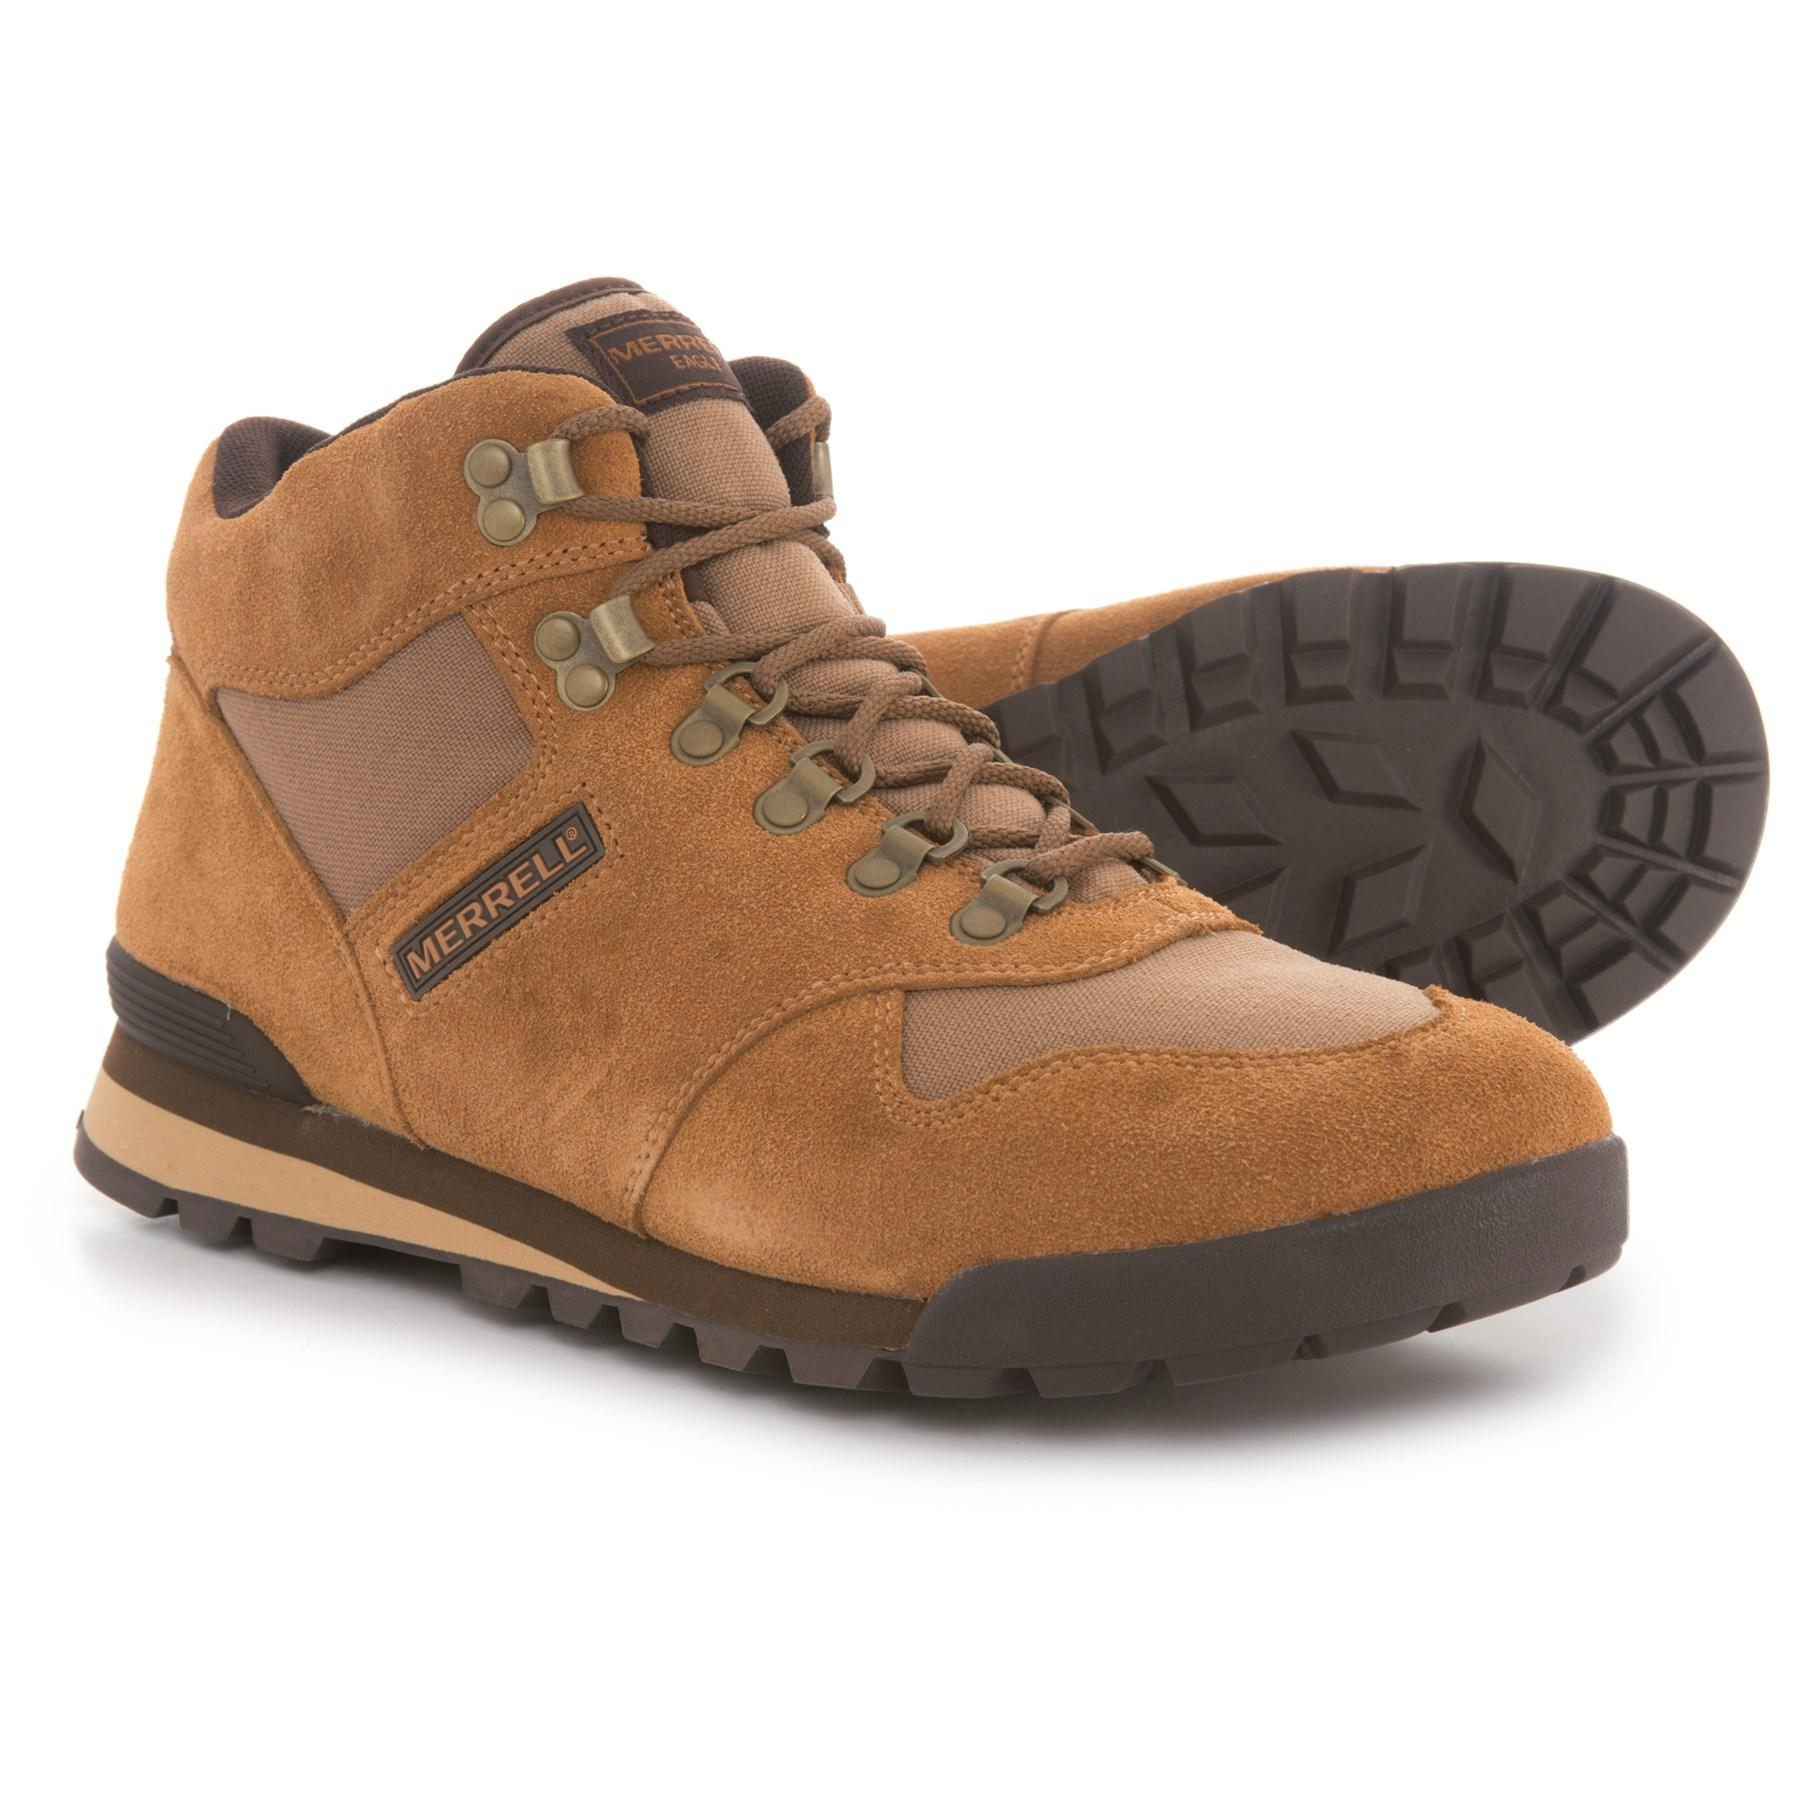 Merrell Suede Eagle Boots in Brown for